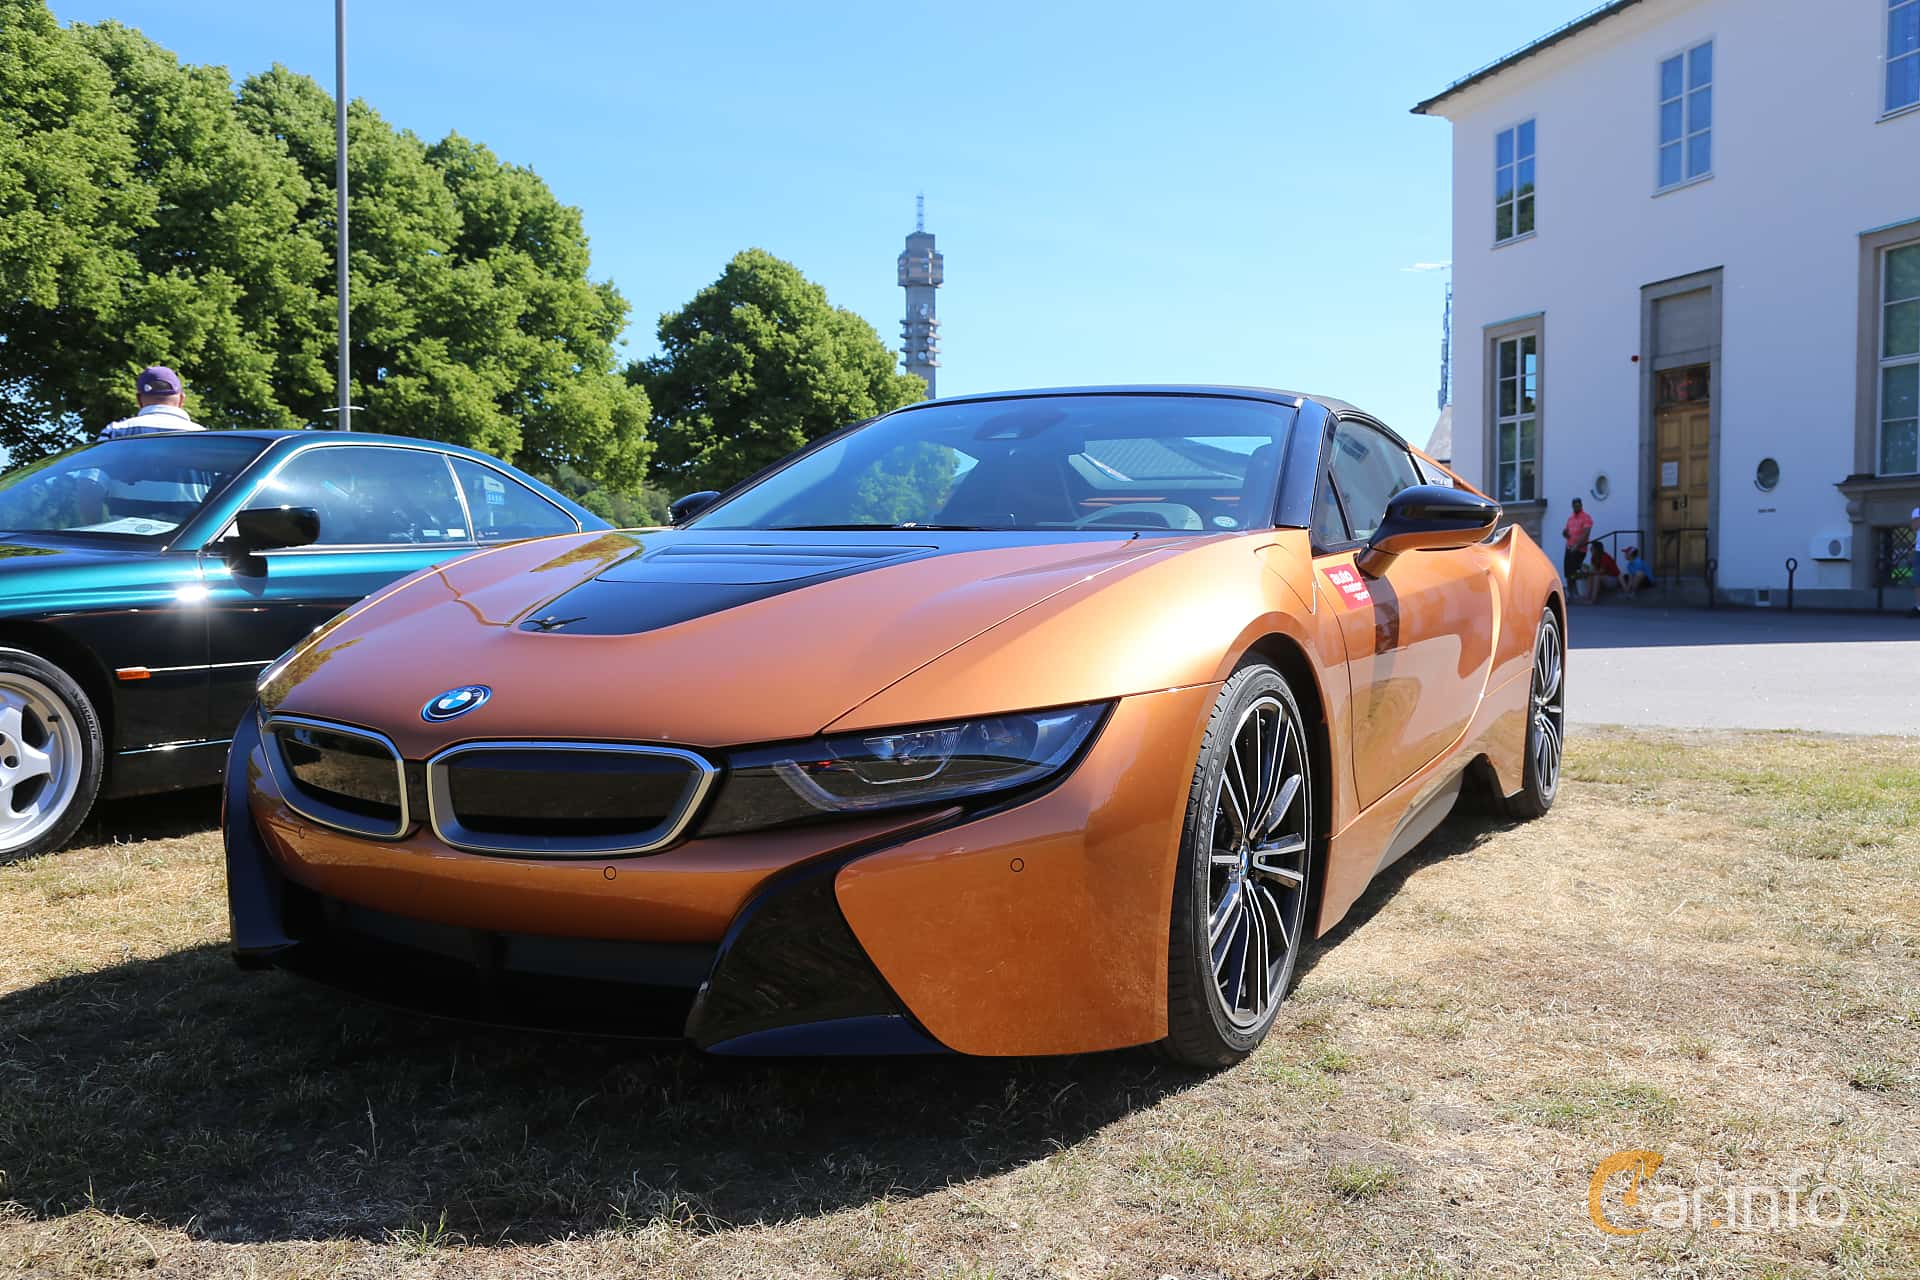 BMW i8 Roadster 1.5 + 11.6 kWh Steptronic, 374hk, 2018 at Cars and Coffee Stockholm 2018